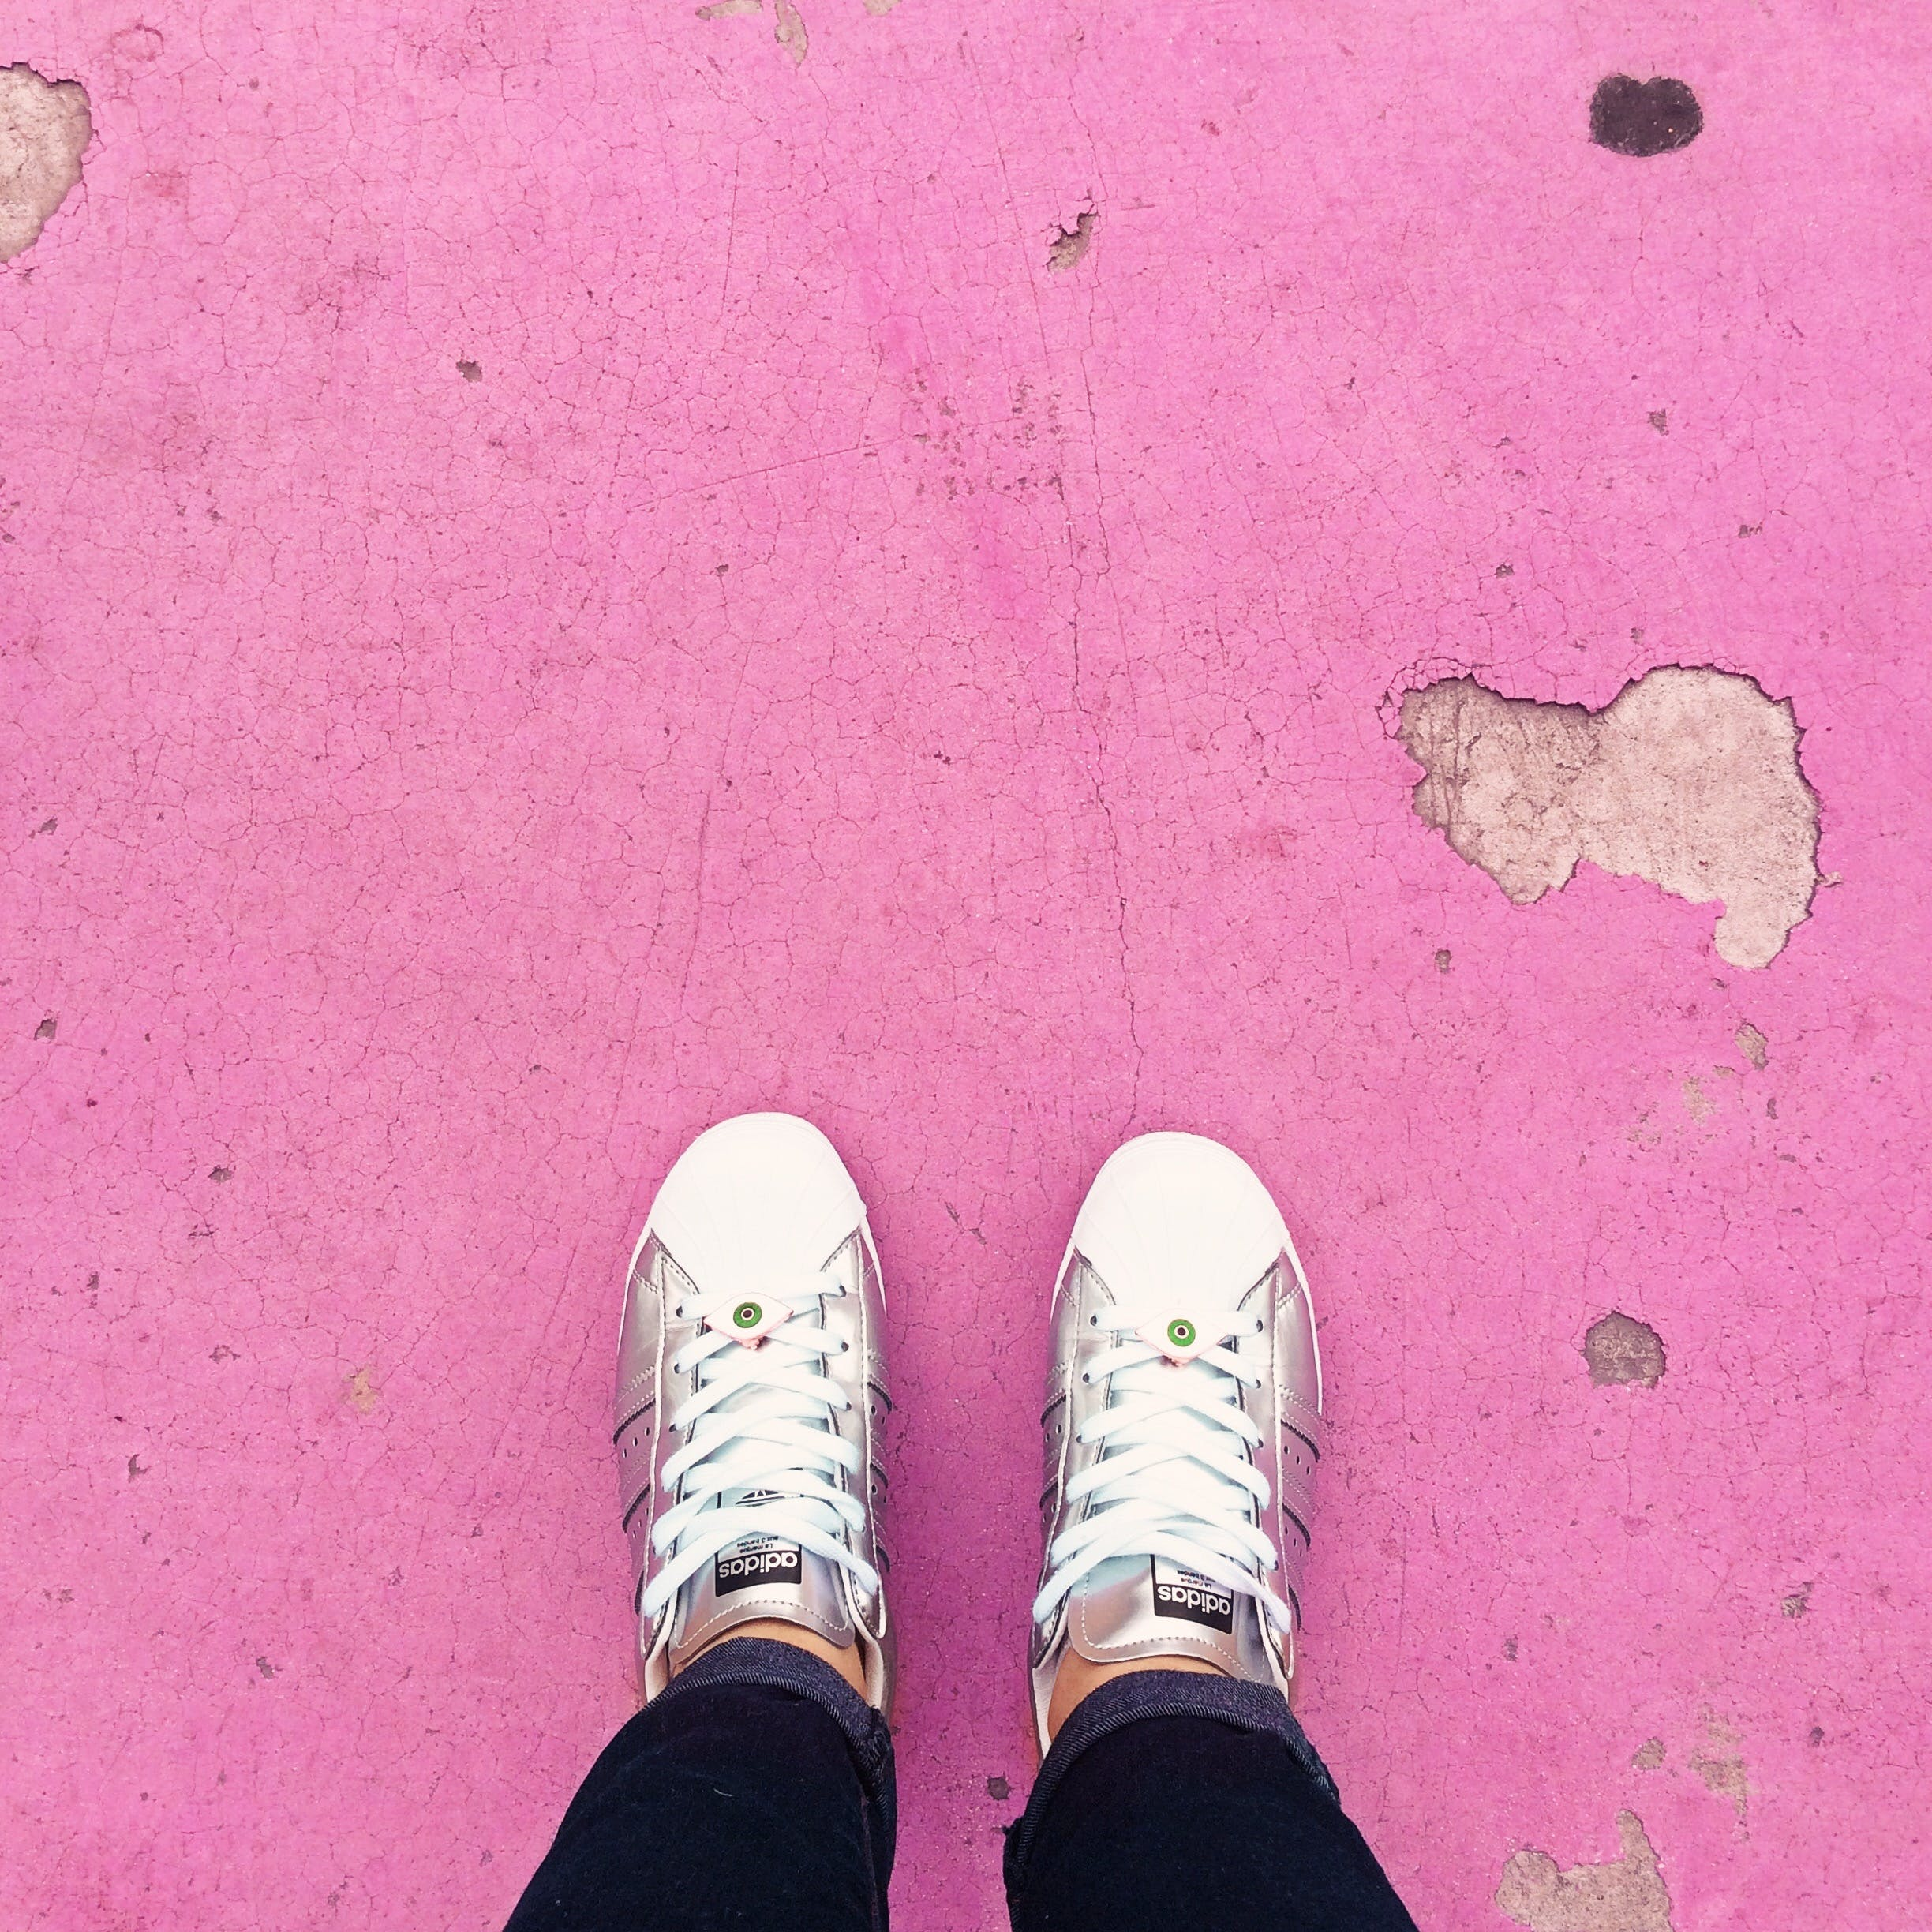 Person Wearing White Sneakers Standing on Pink Floor